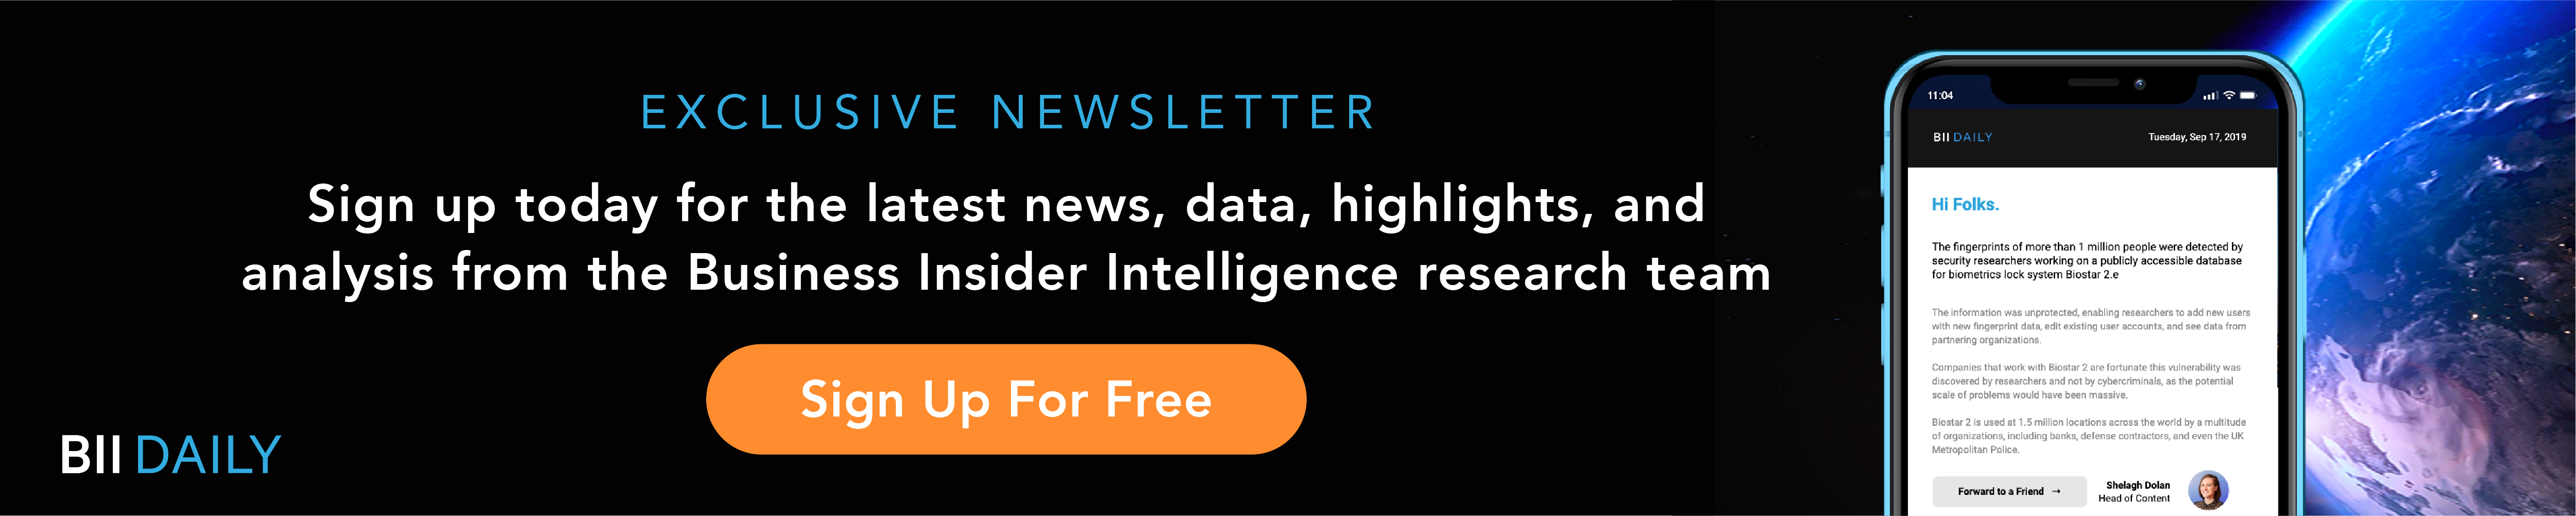 Signup Today: Free Daily Newsletter from Business Insider Intelligence